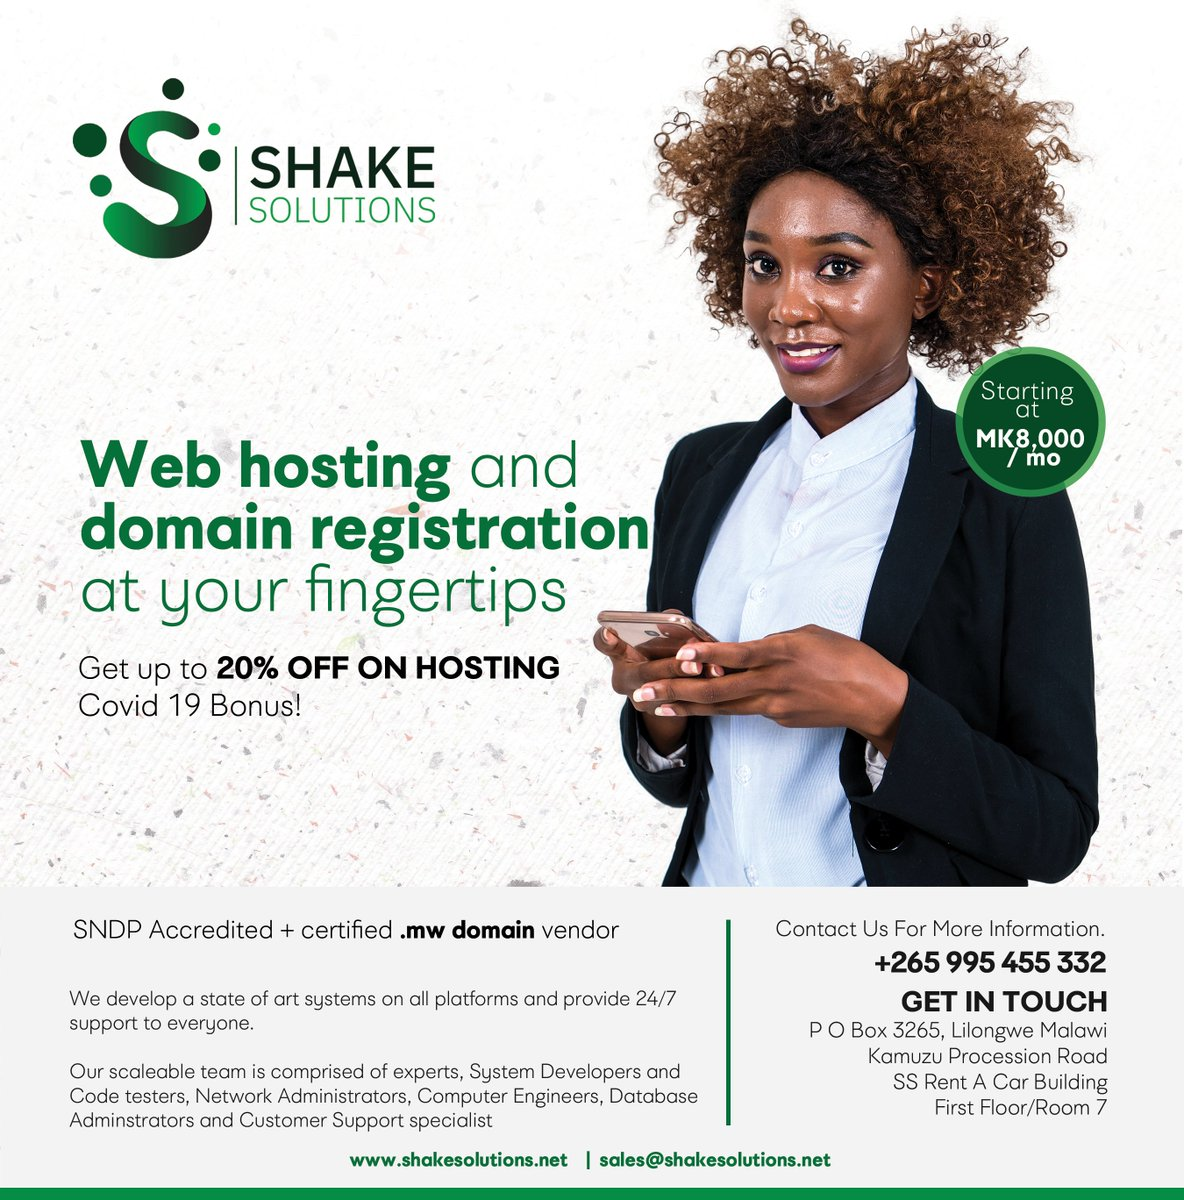 Host your website with us today and get a 20% discount on our hosting packages. Don't let Covid19 slow down your business. Get a package of your choice at a lower price and get a bonus of 24/7 online support.  #Webhosting #Discount #Malawi #Shakeitup #Digitalmarket  #Bonus https://t.co/4SQMqjhujp